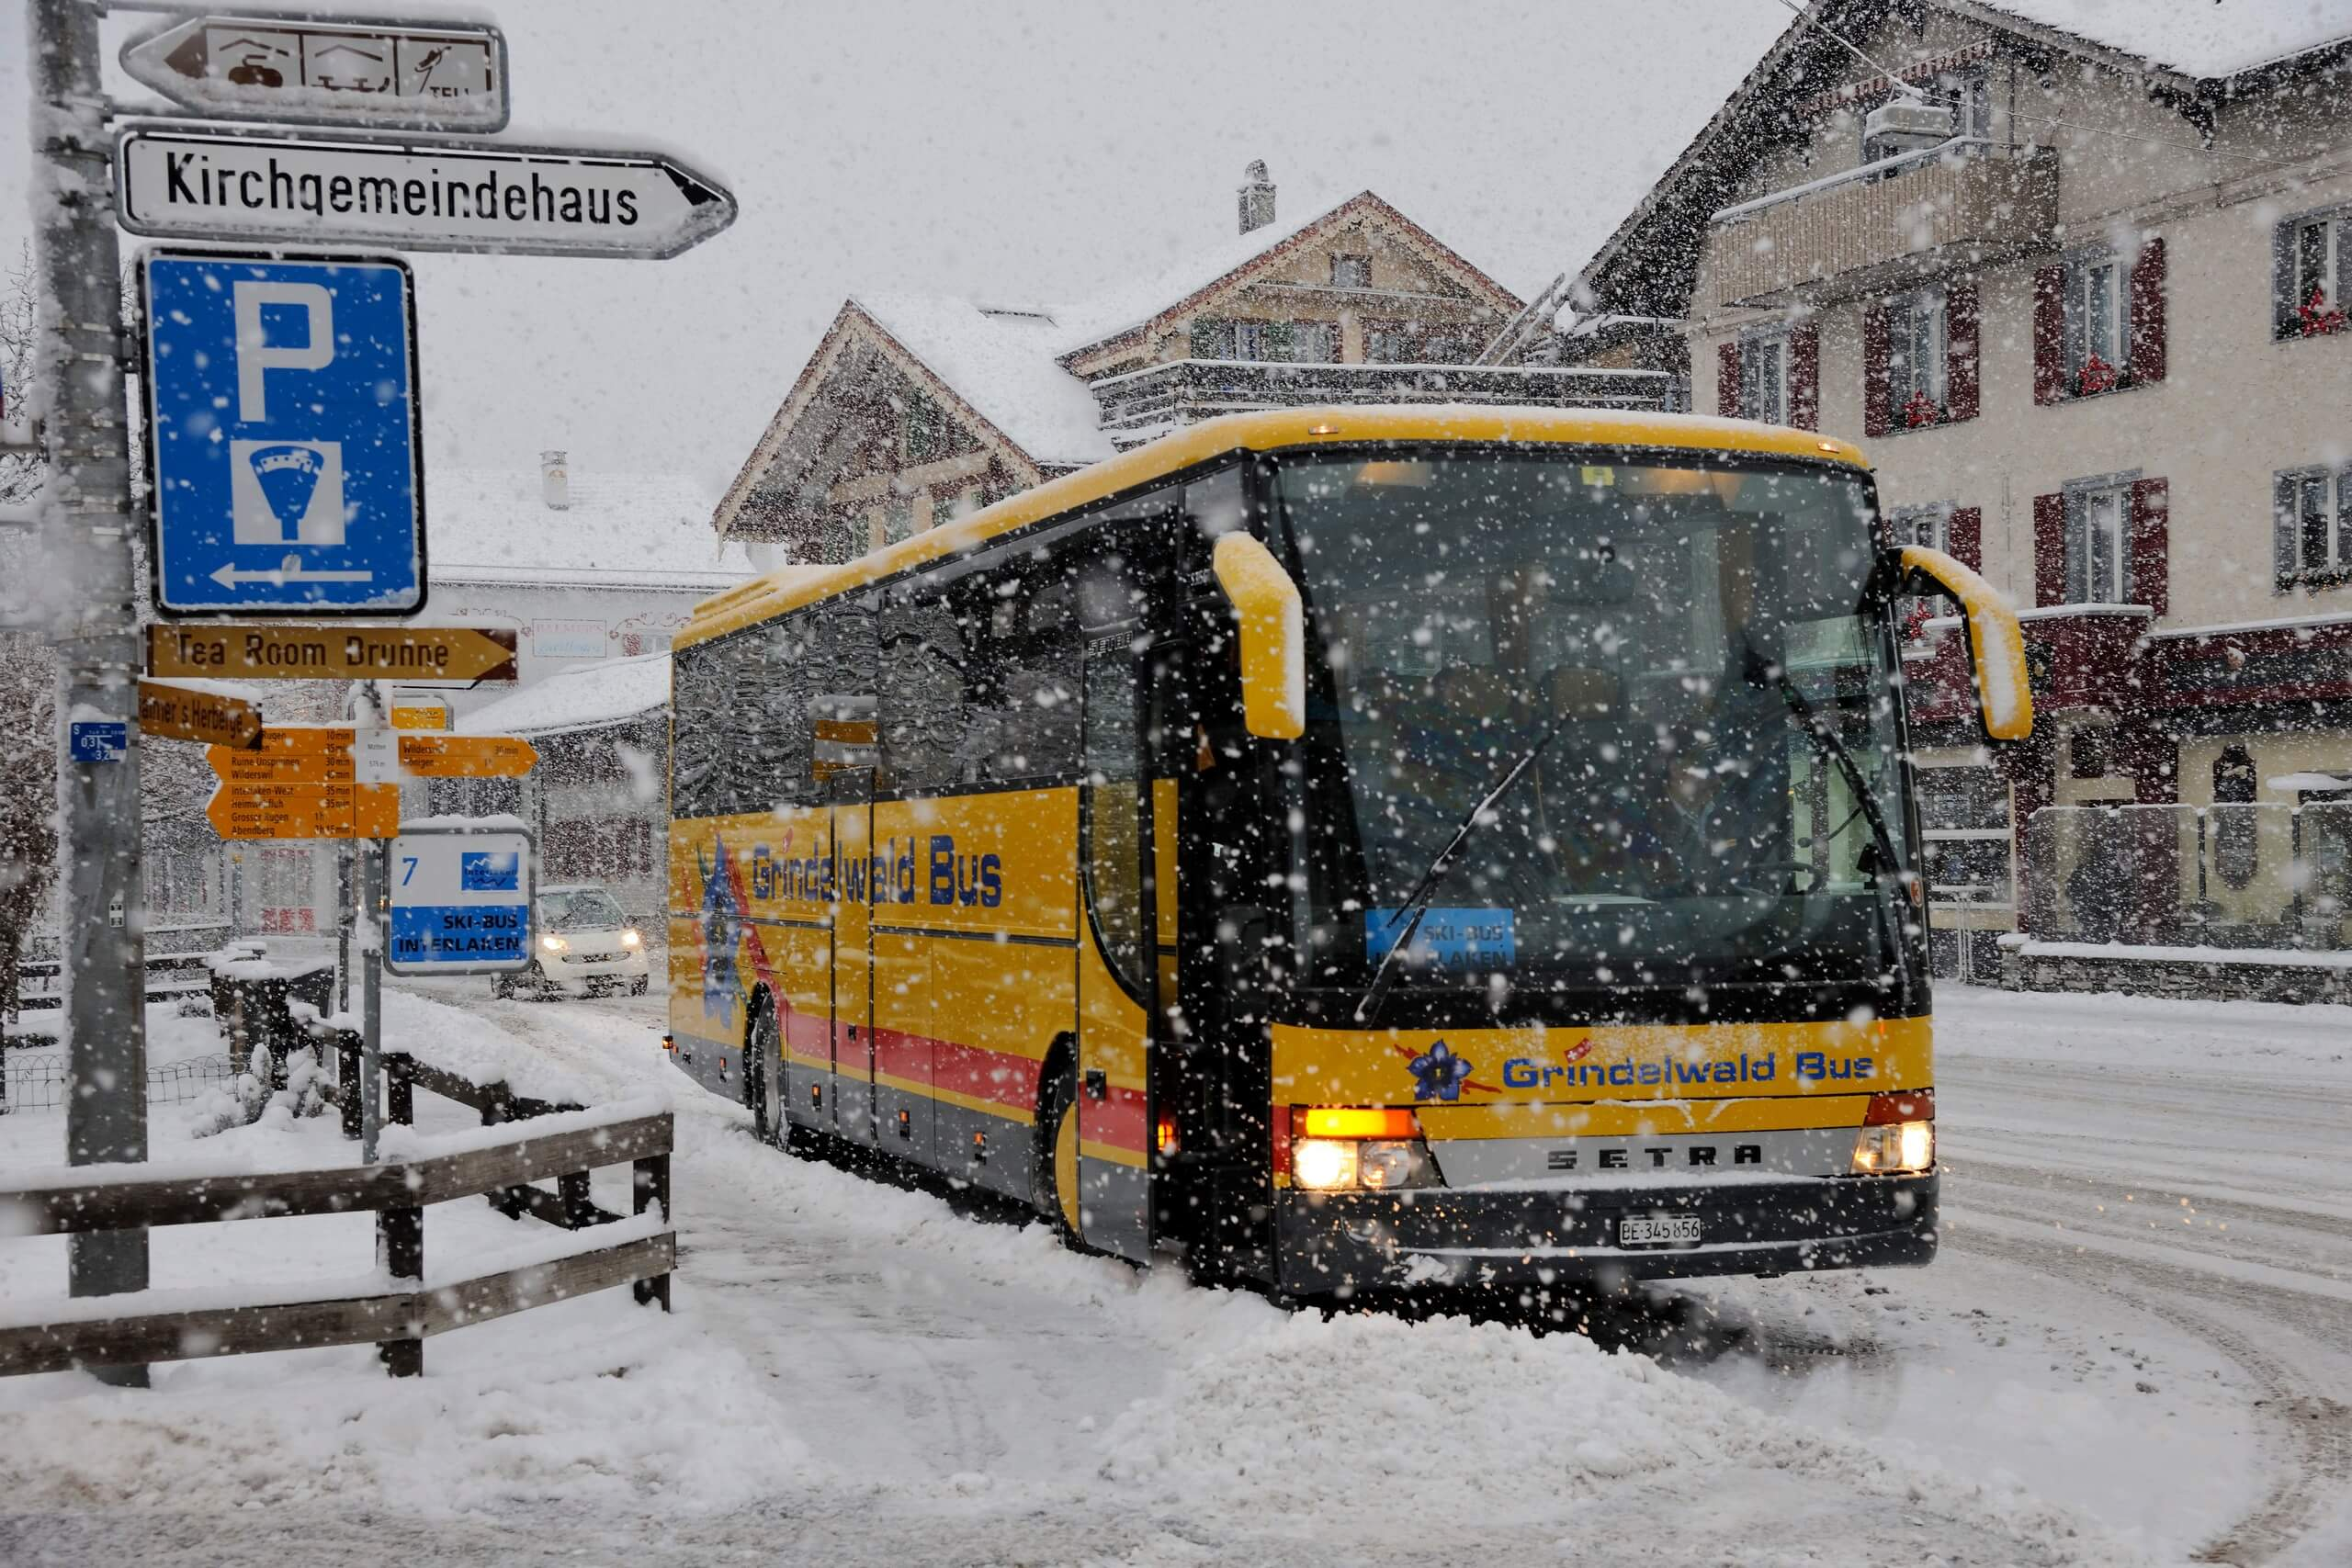 interlaken-skibus-winter-haltestelle-grindelwald-bus